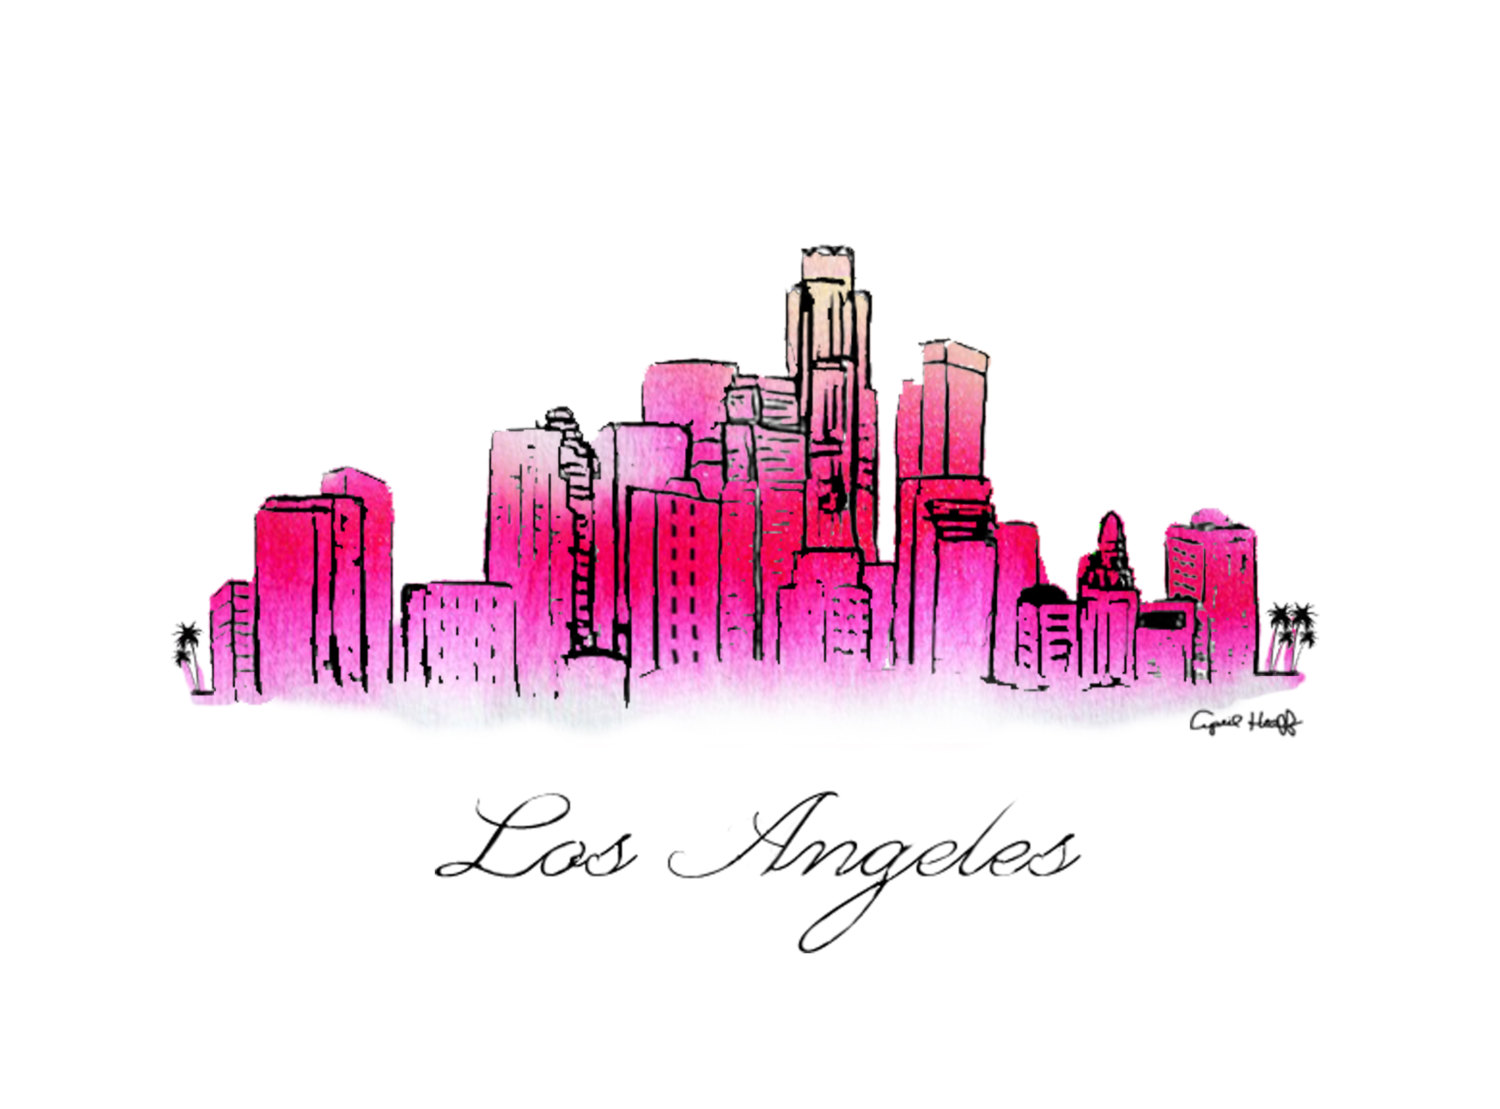 Los Angeles clipart Los Angeles Skyline Silhouette Palm Trees #6